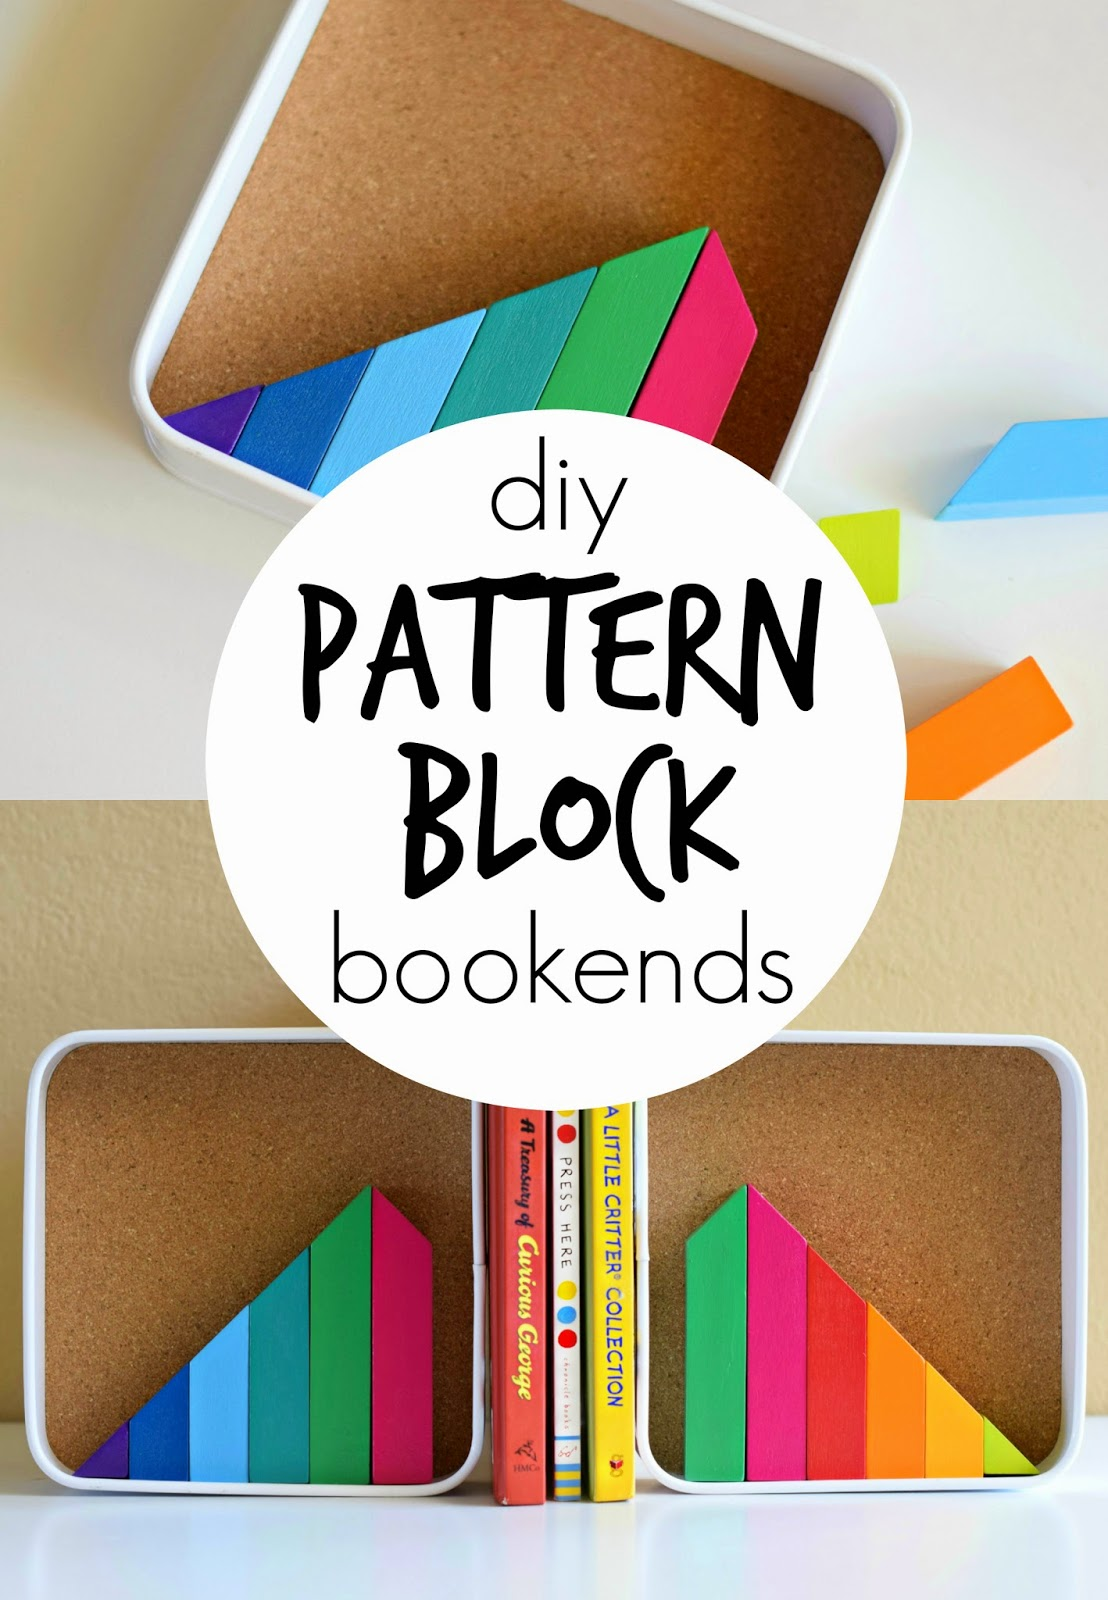 Mommy Testers, DIY Pattern Block Bookends, Target Toy Emporium, Mindware Pattern Blocks, Pattern Block DIY, #TargetToys #shop